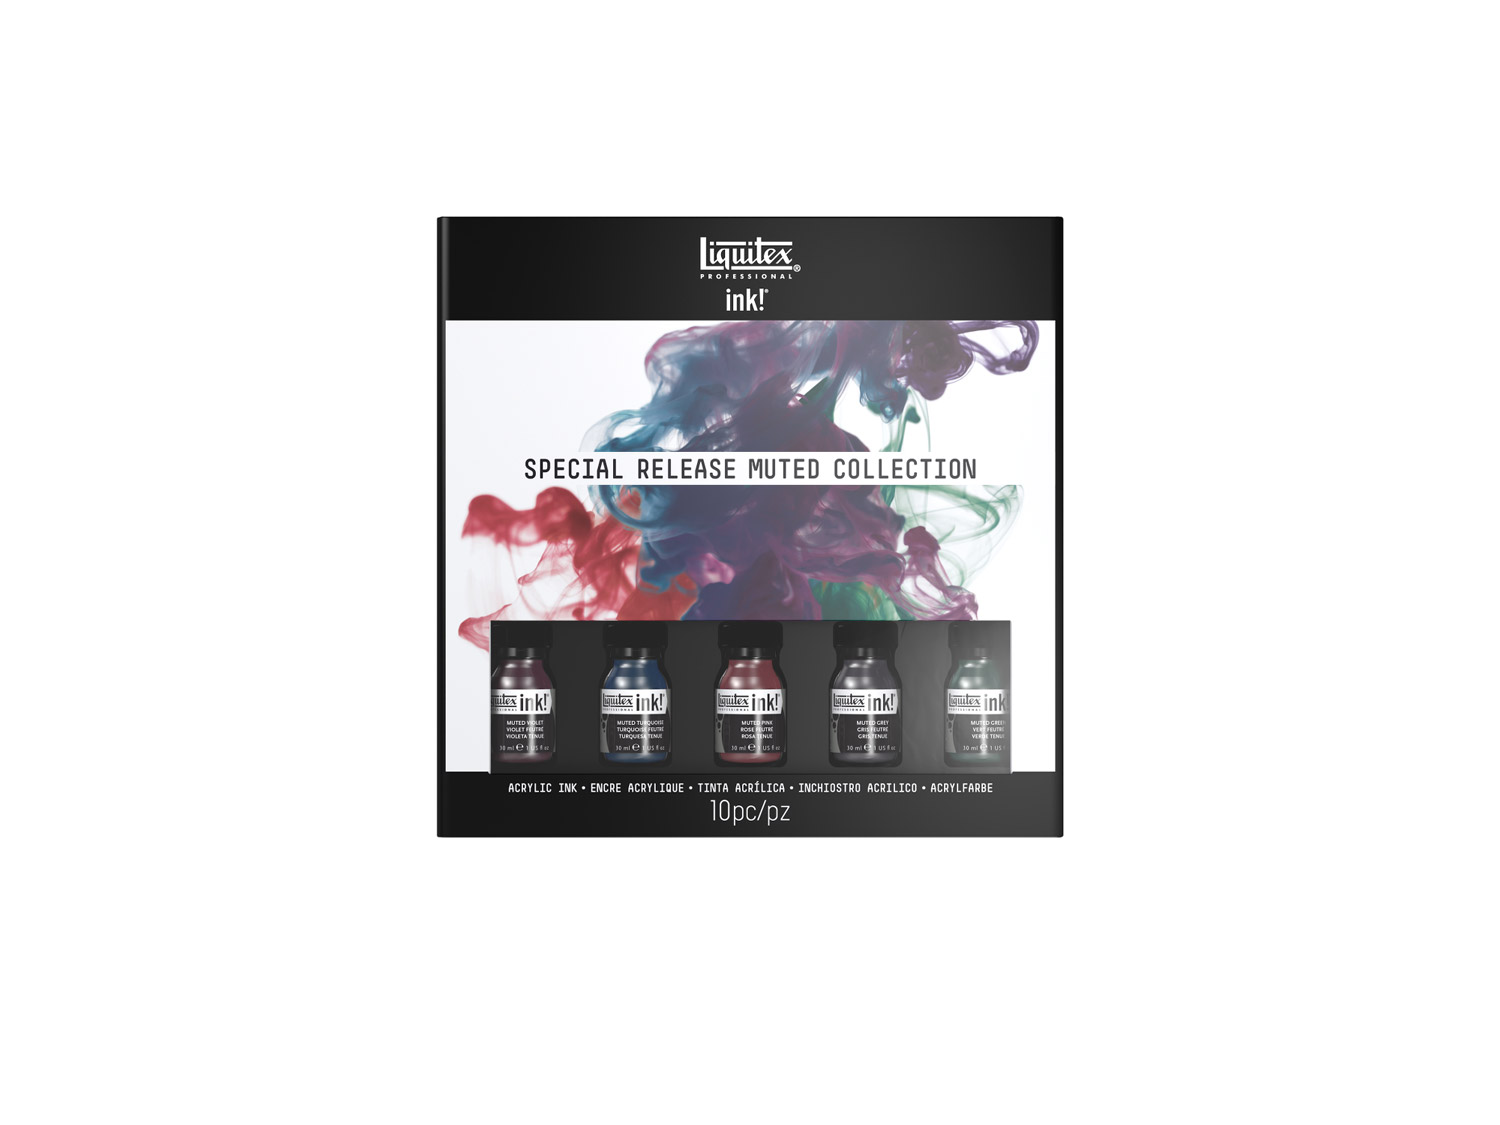 Liquitex Acrylic Ink Muted Collection 5 Pack